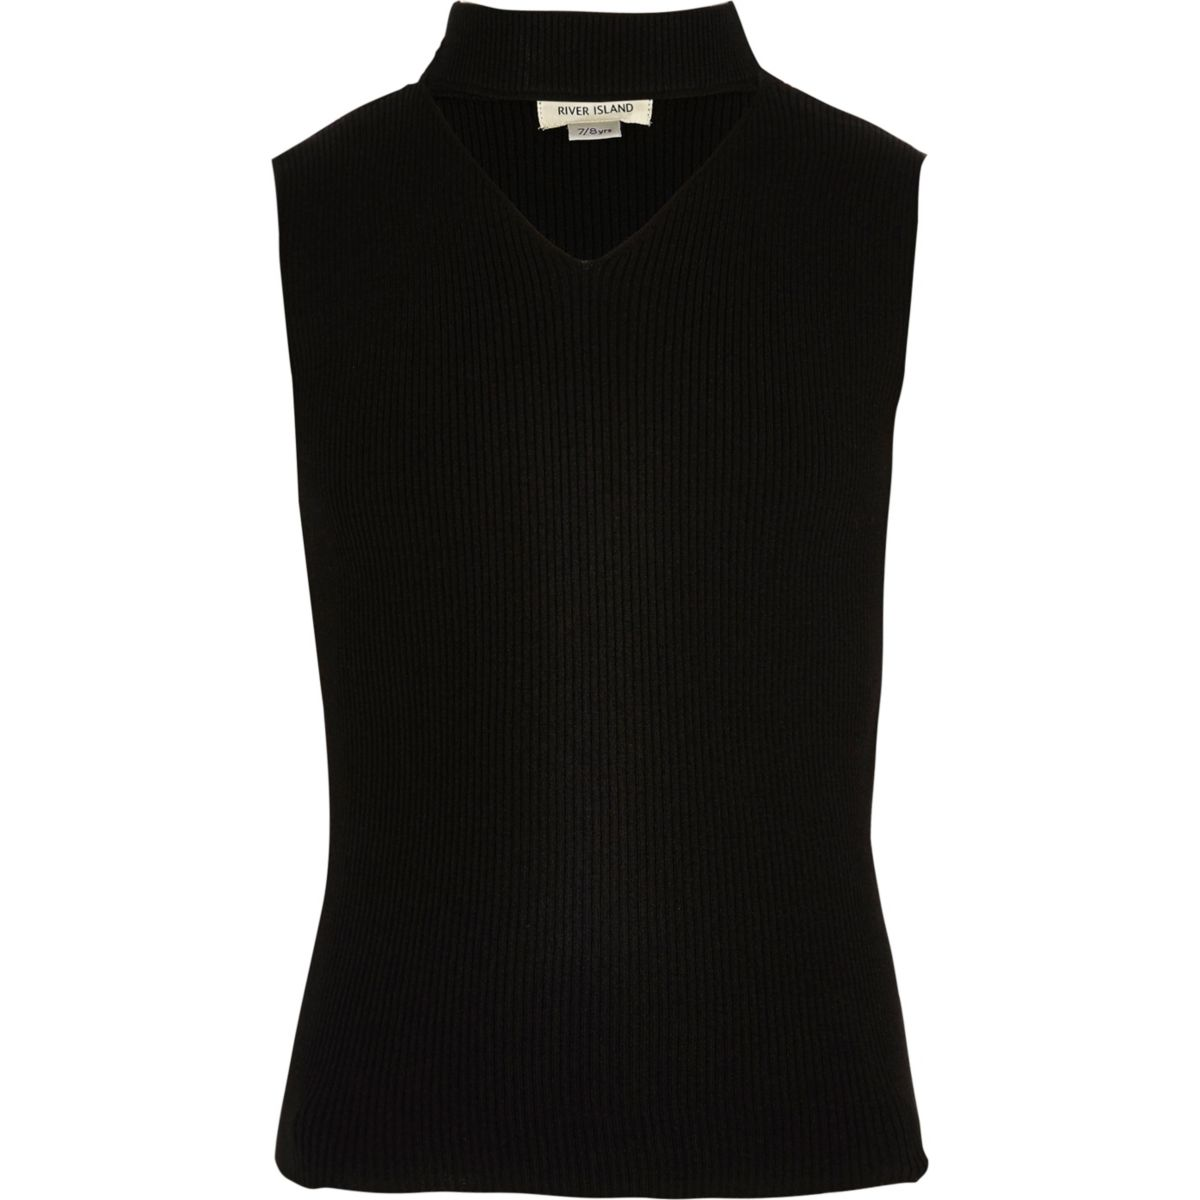 Girls black knit sleeveless choker top - Tops - Sale